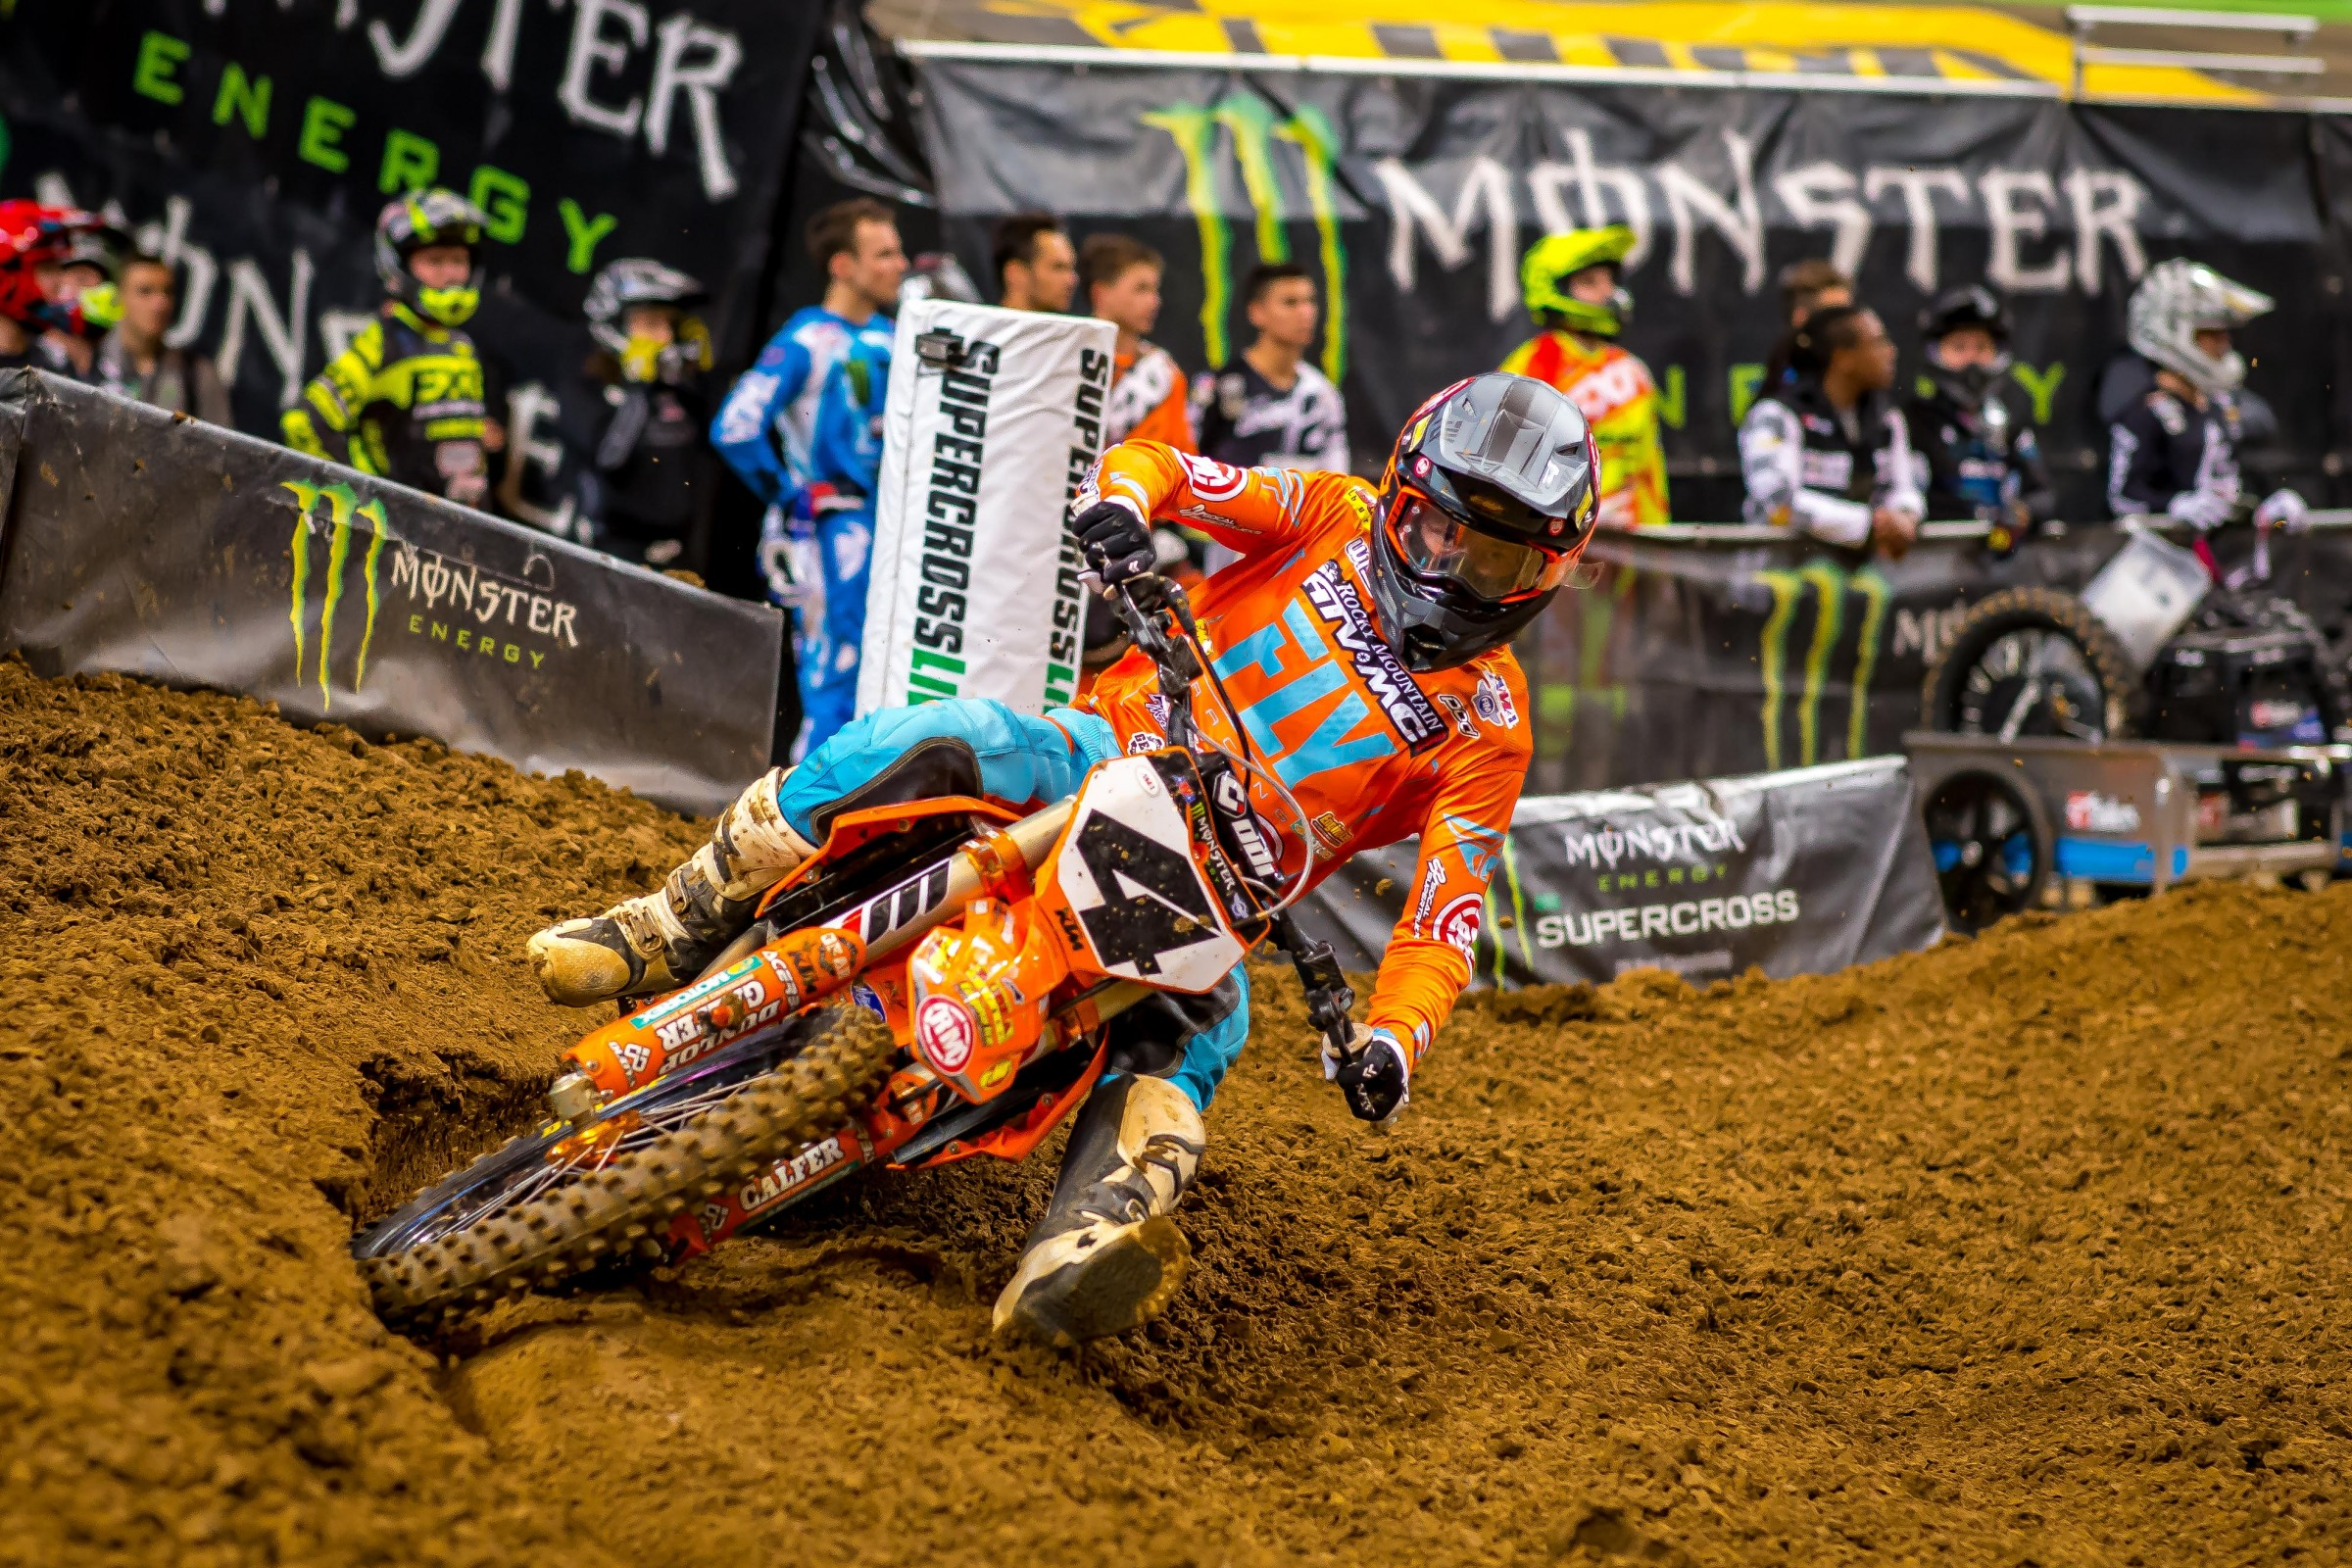 Despite a hand injury, Baggett finished the night inside the top five.